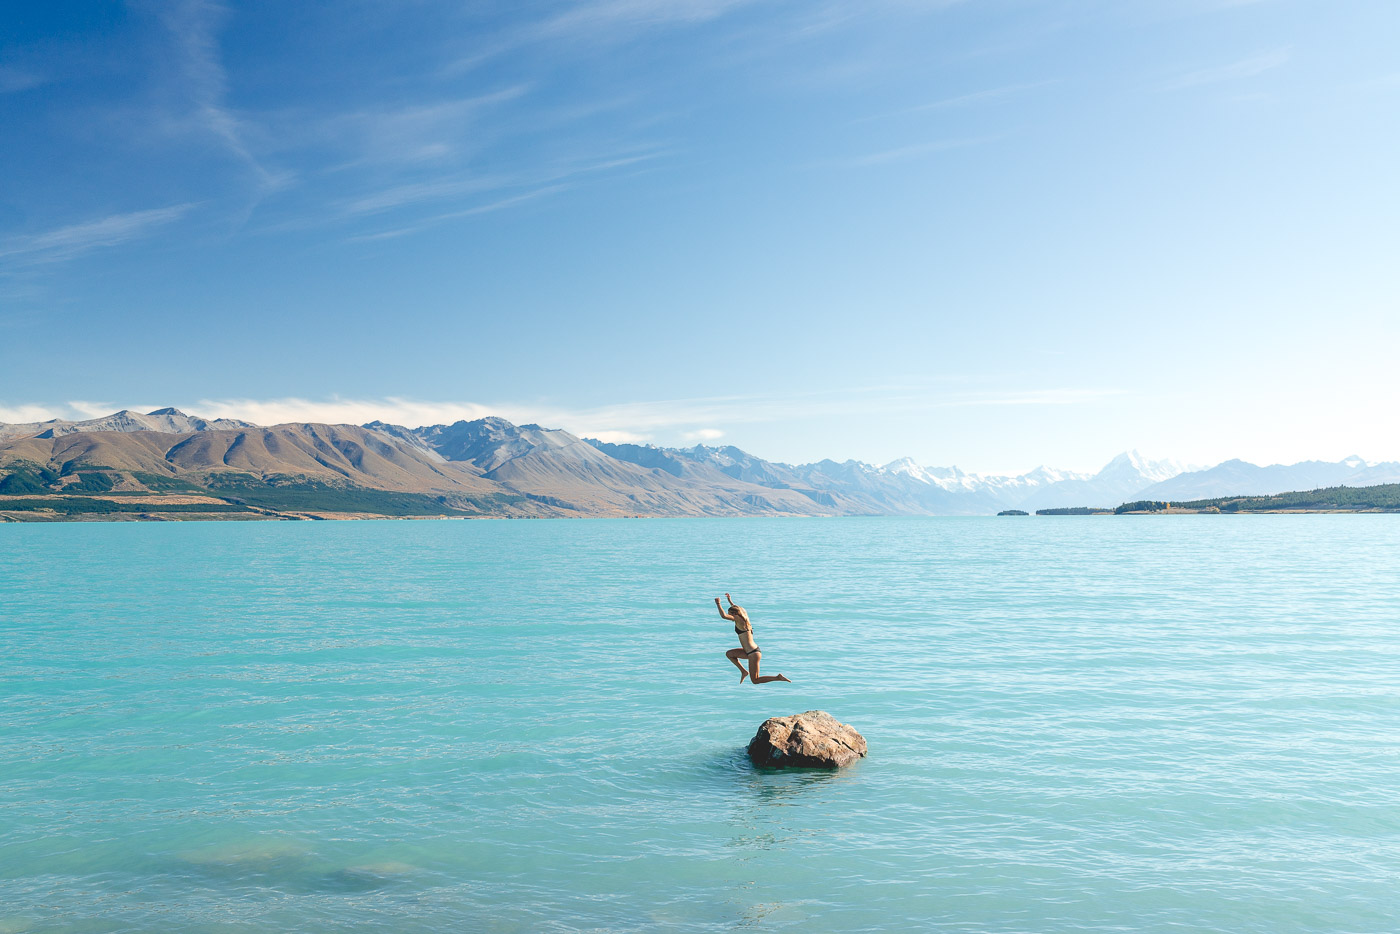 Morning swim in Lake Pukaki in the Mount Cook National park.